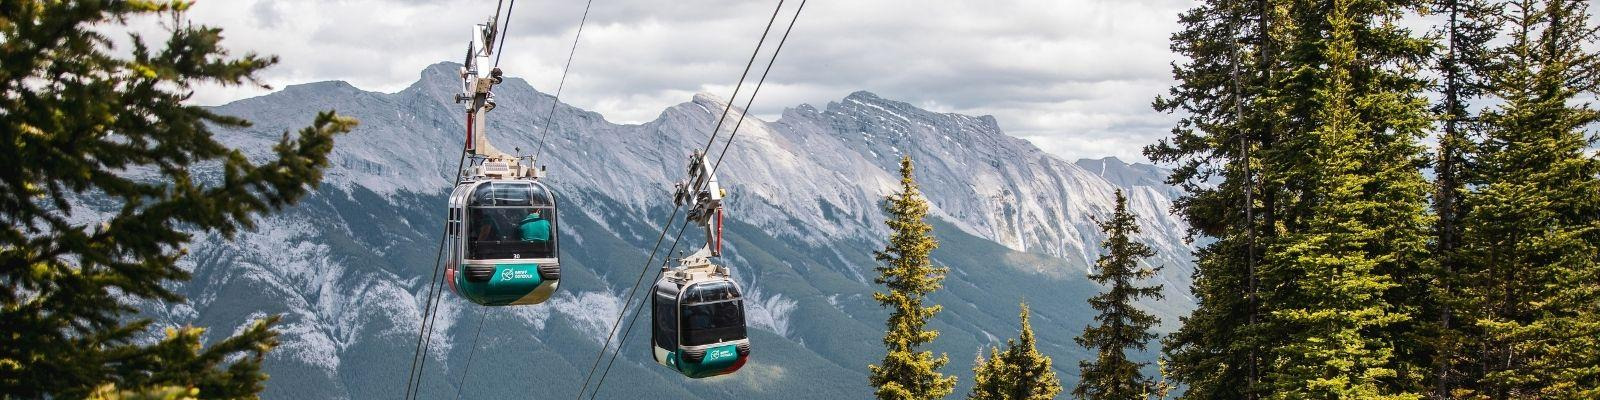 Visiting Canada for the First Time? Here's What to See and Do